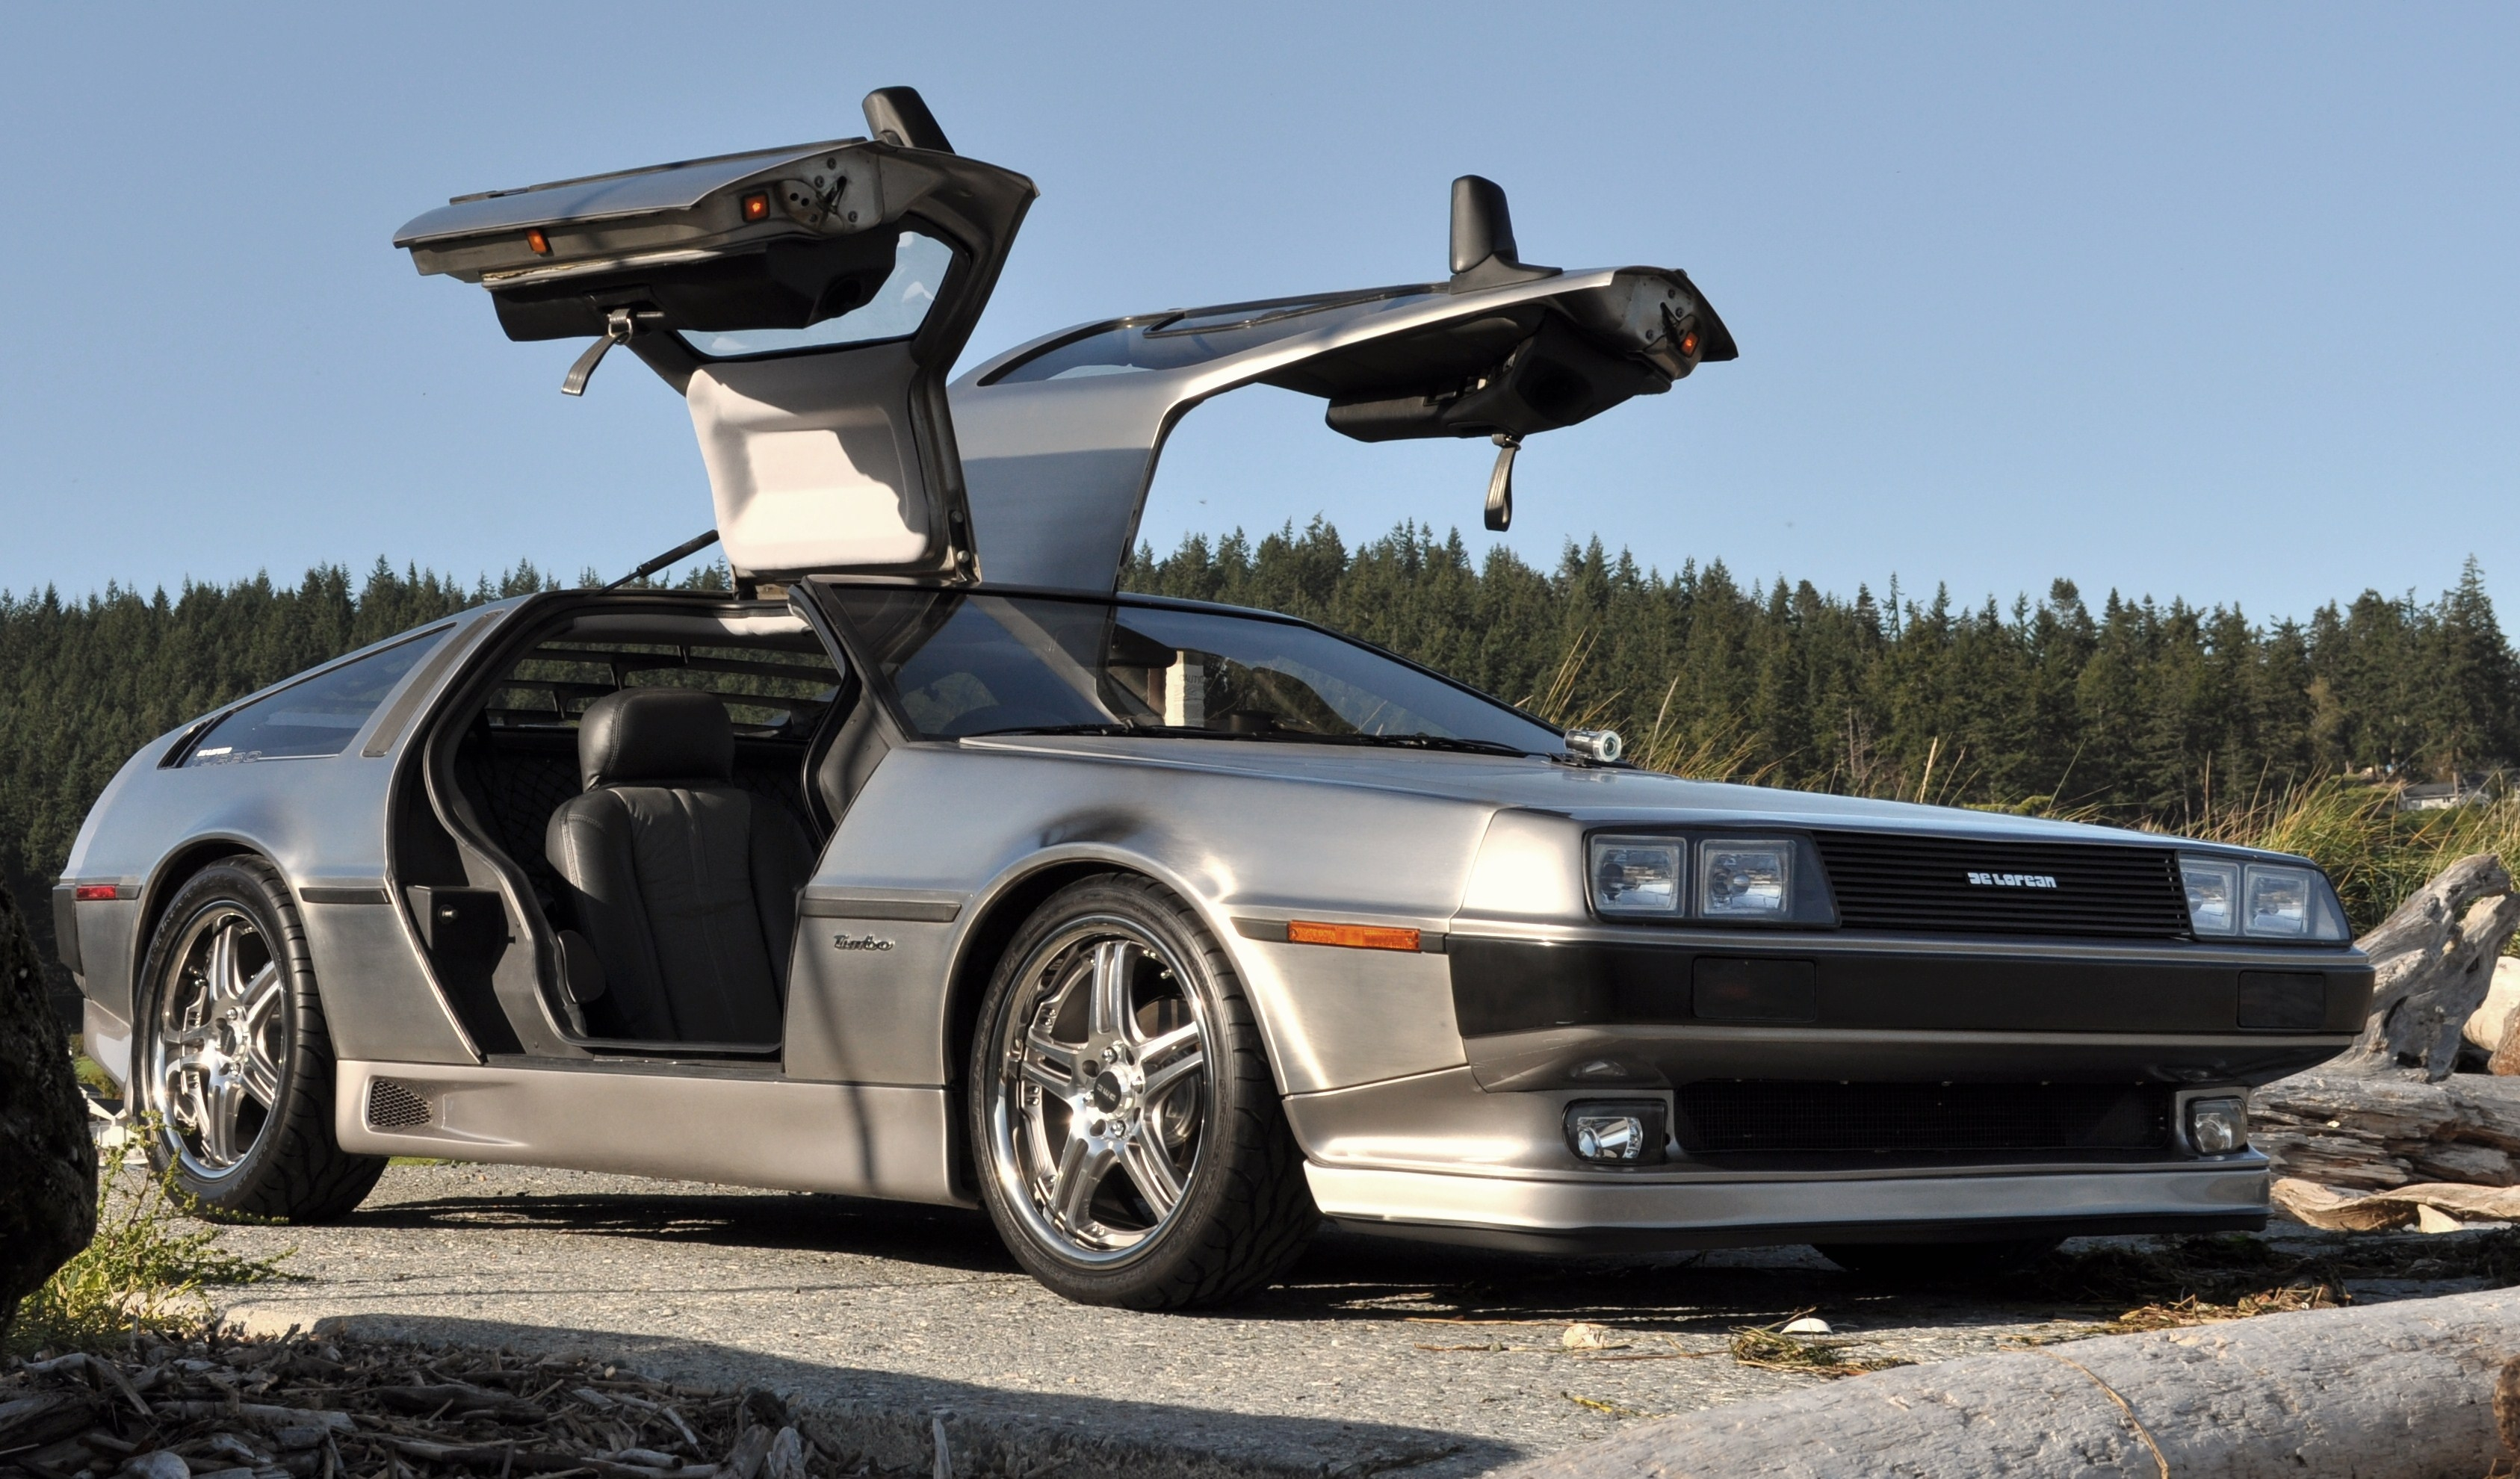 Delorean07 1981 DeLorean DMC-12 14812474